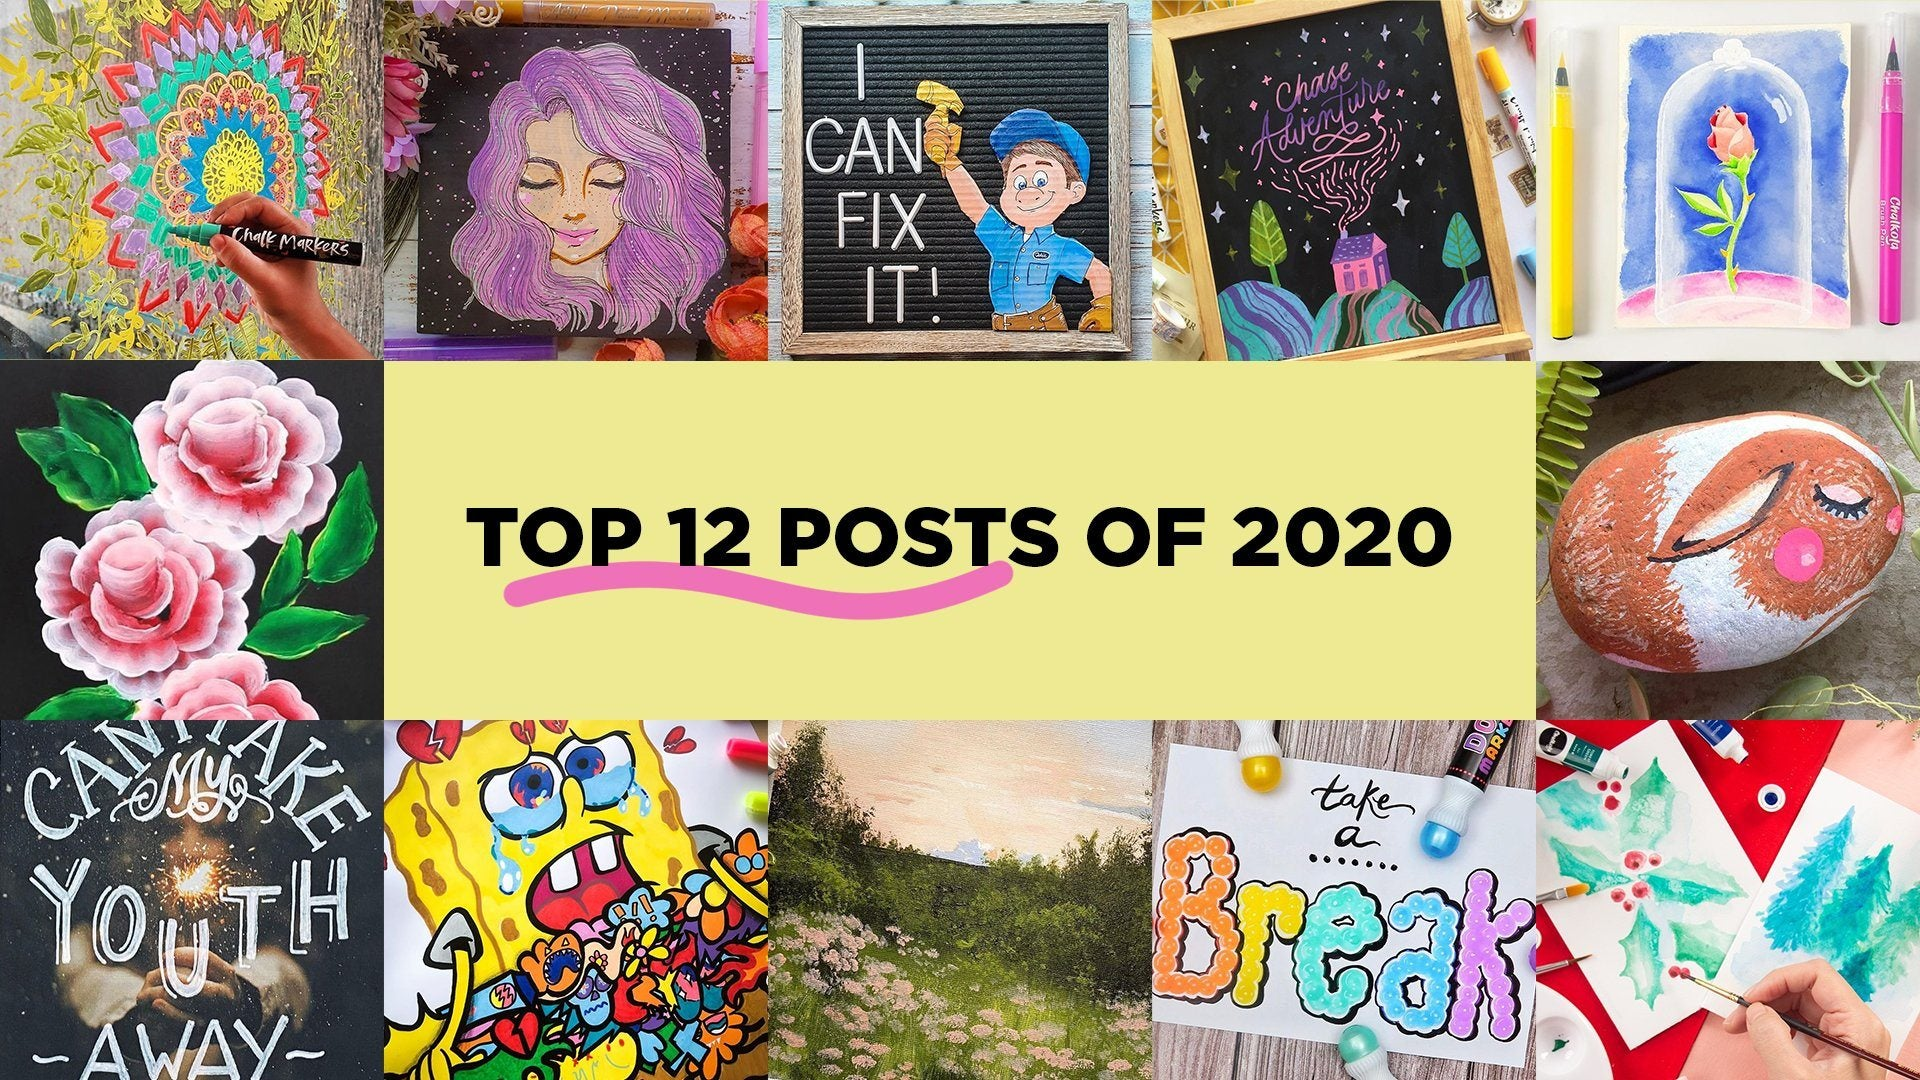 Chalkola's Top 12 Posts of 2020